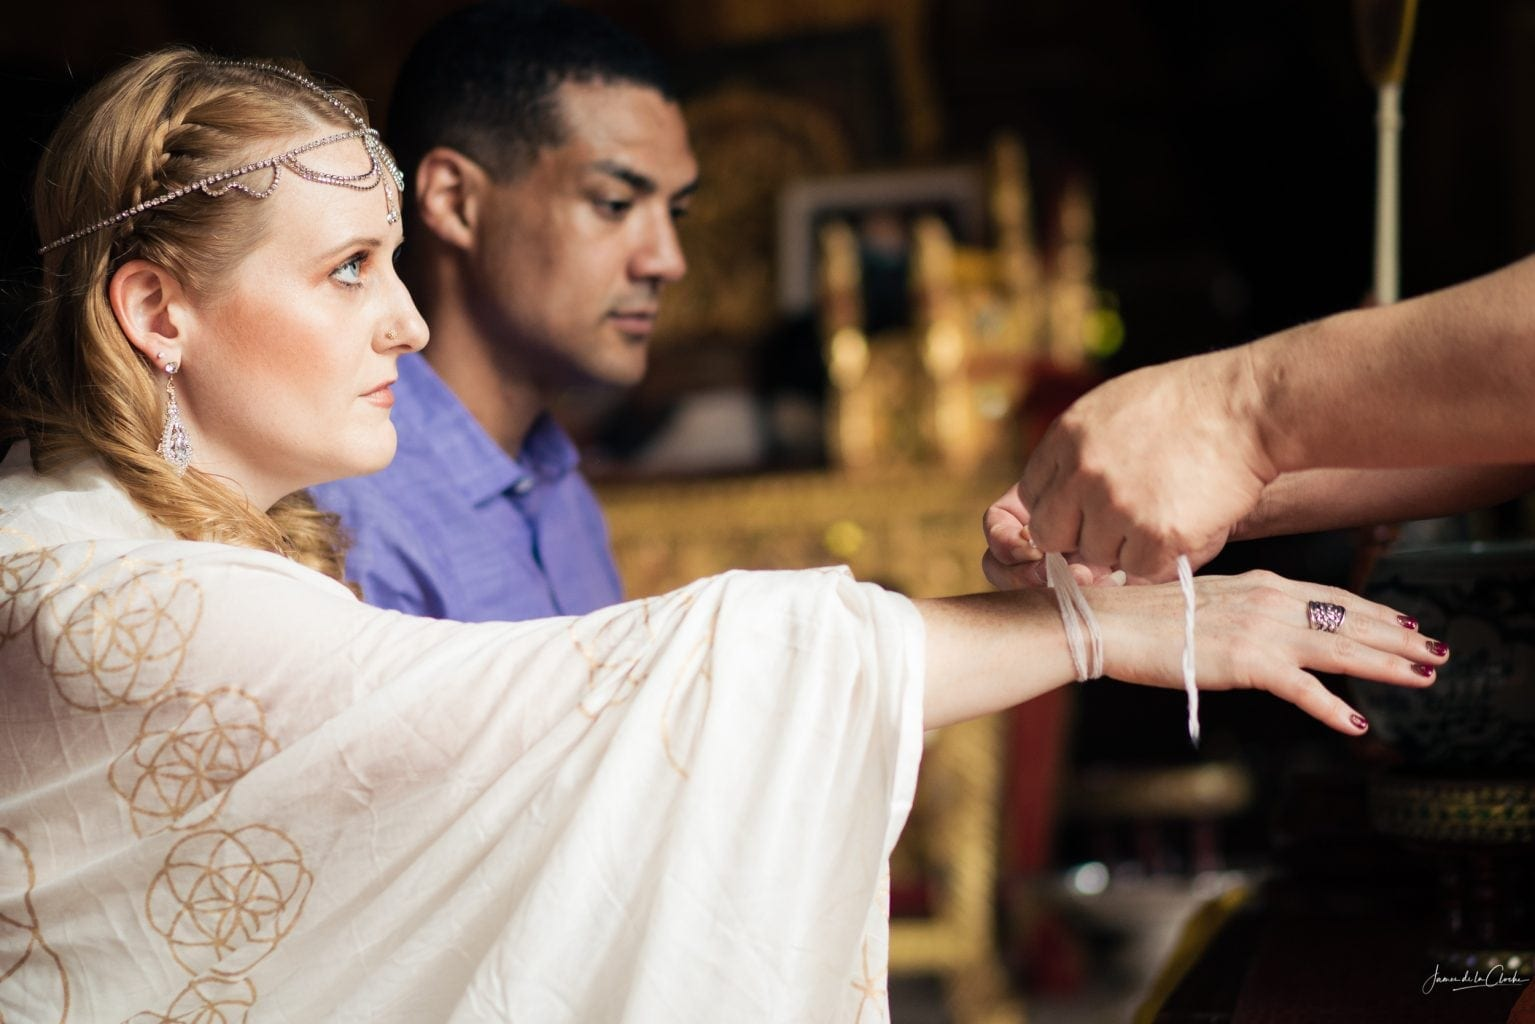 string tied on the bride's wrist